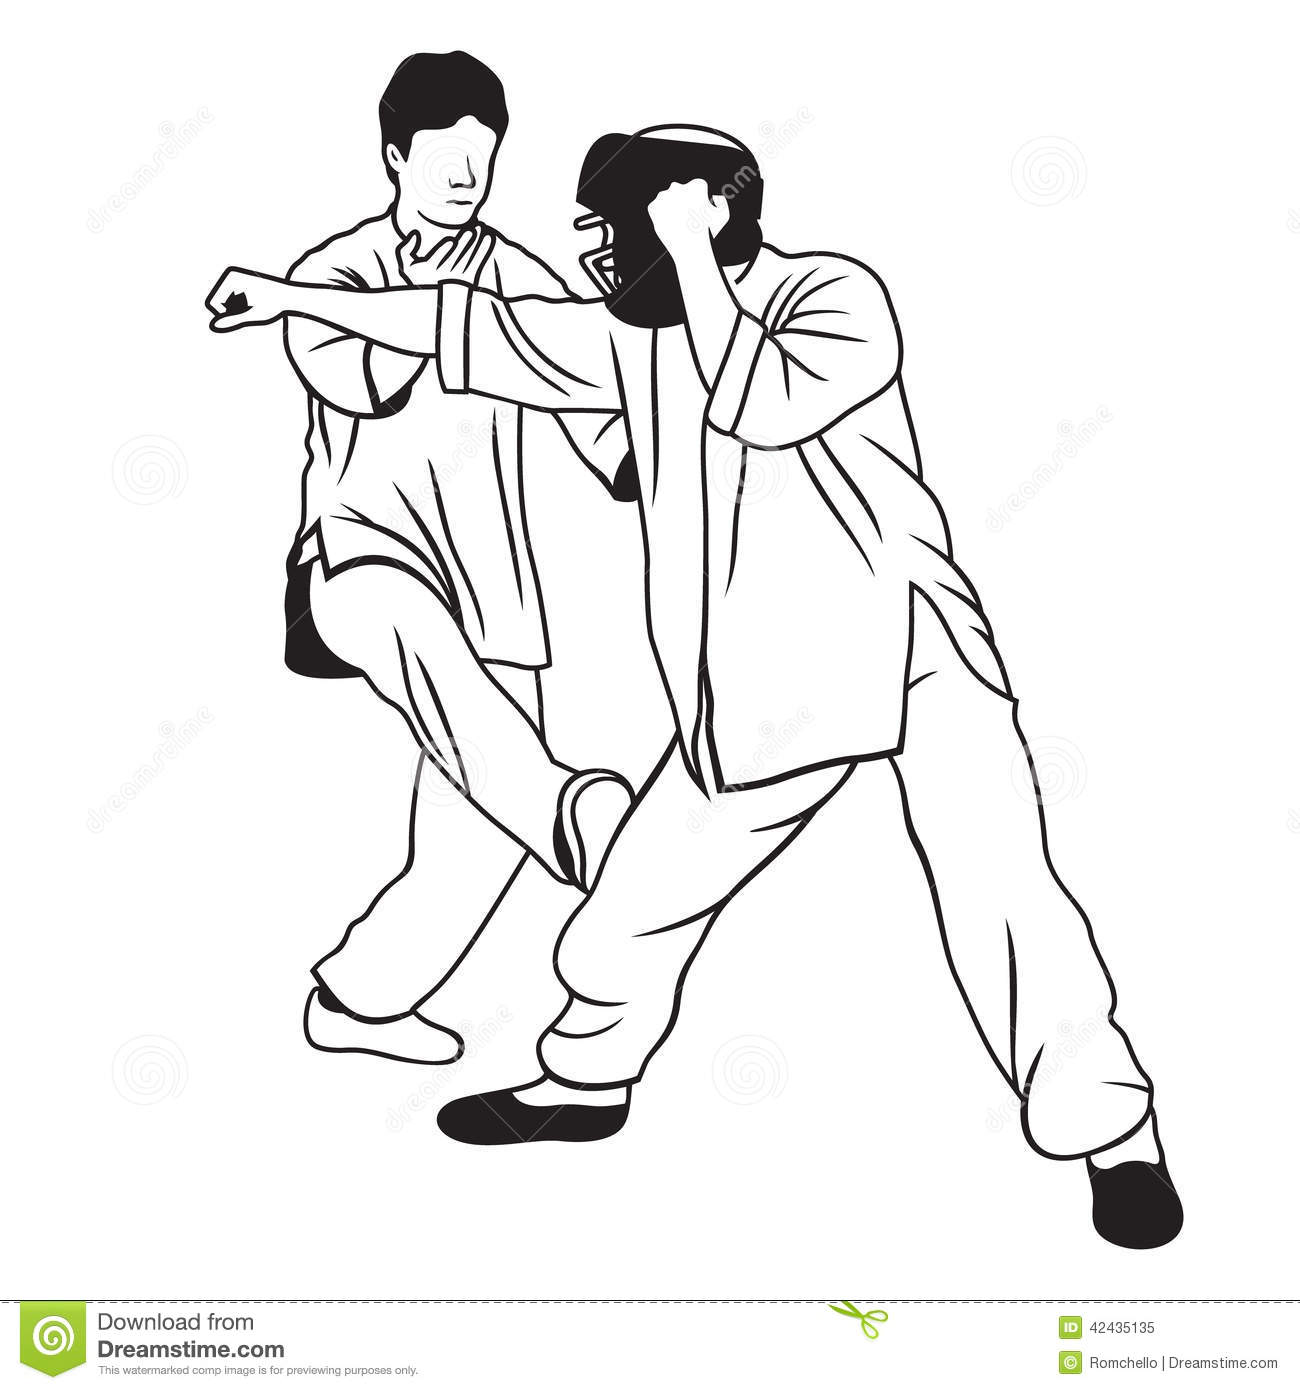 Chun stock illustrations 105 chun stock illustrations vectors martial arts illustration application of self defense techniques when attacking enemy royalty free stock biocorpaavc